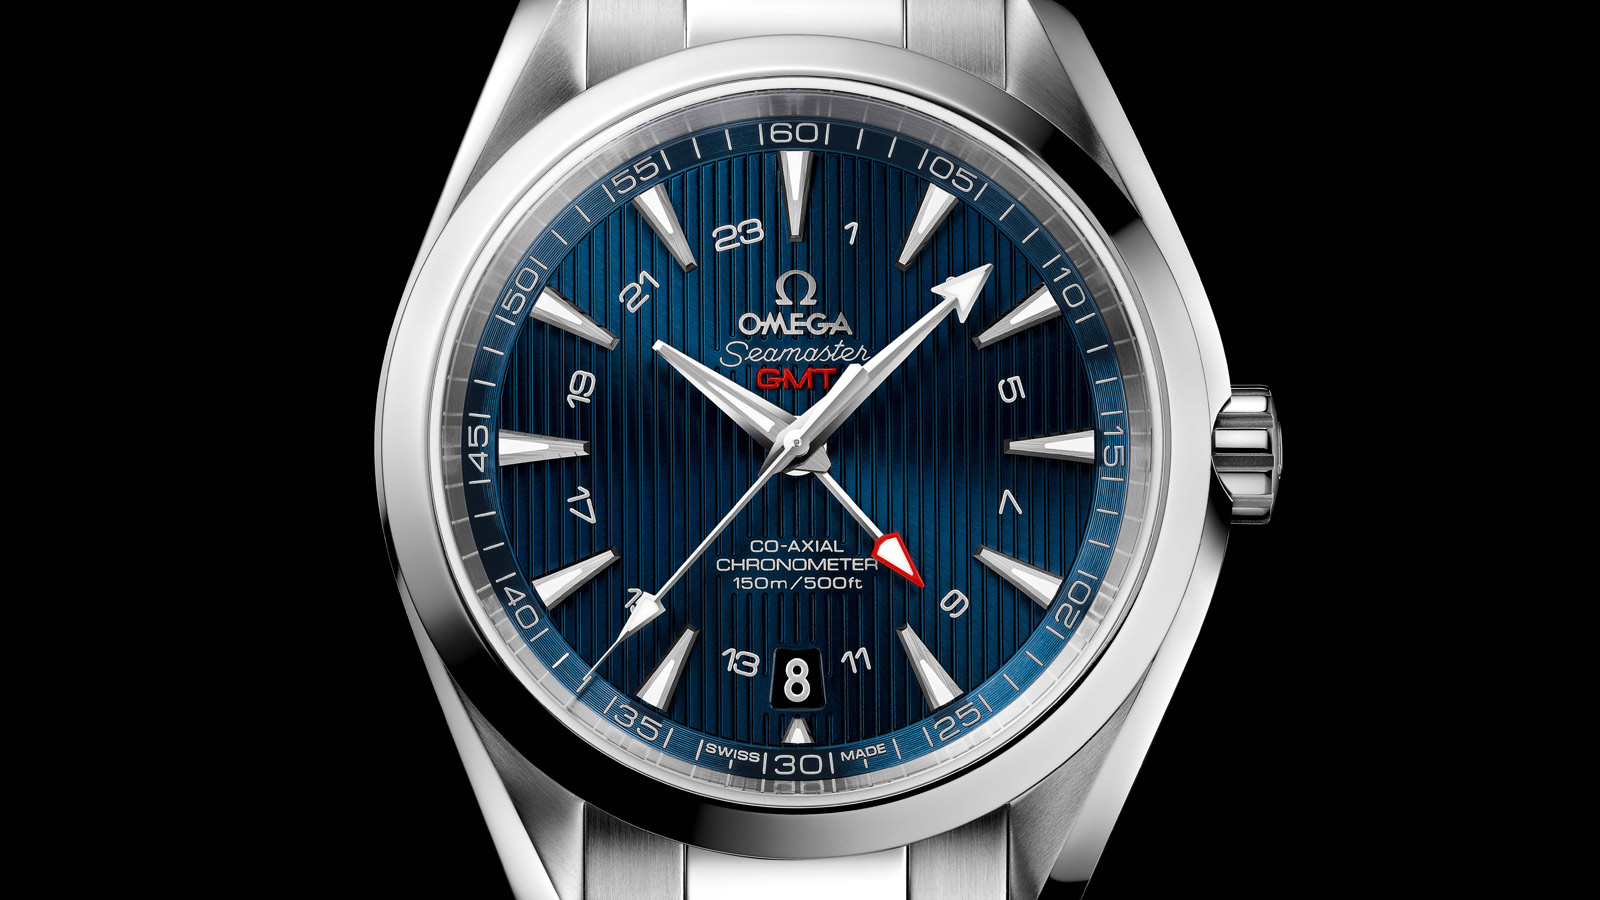 Seamaster アクアテラ 150M Aqua Terra 150M Omega Co‑Axial GMT 43 mm - 231.10.43.22.03.001 - ビュー 1